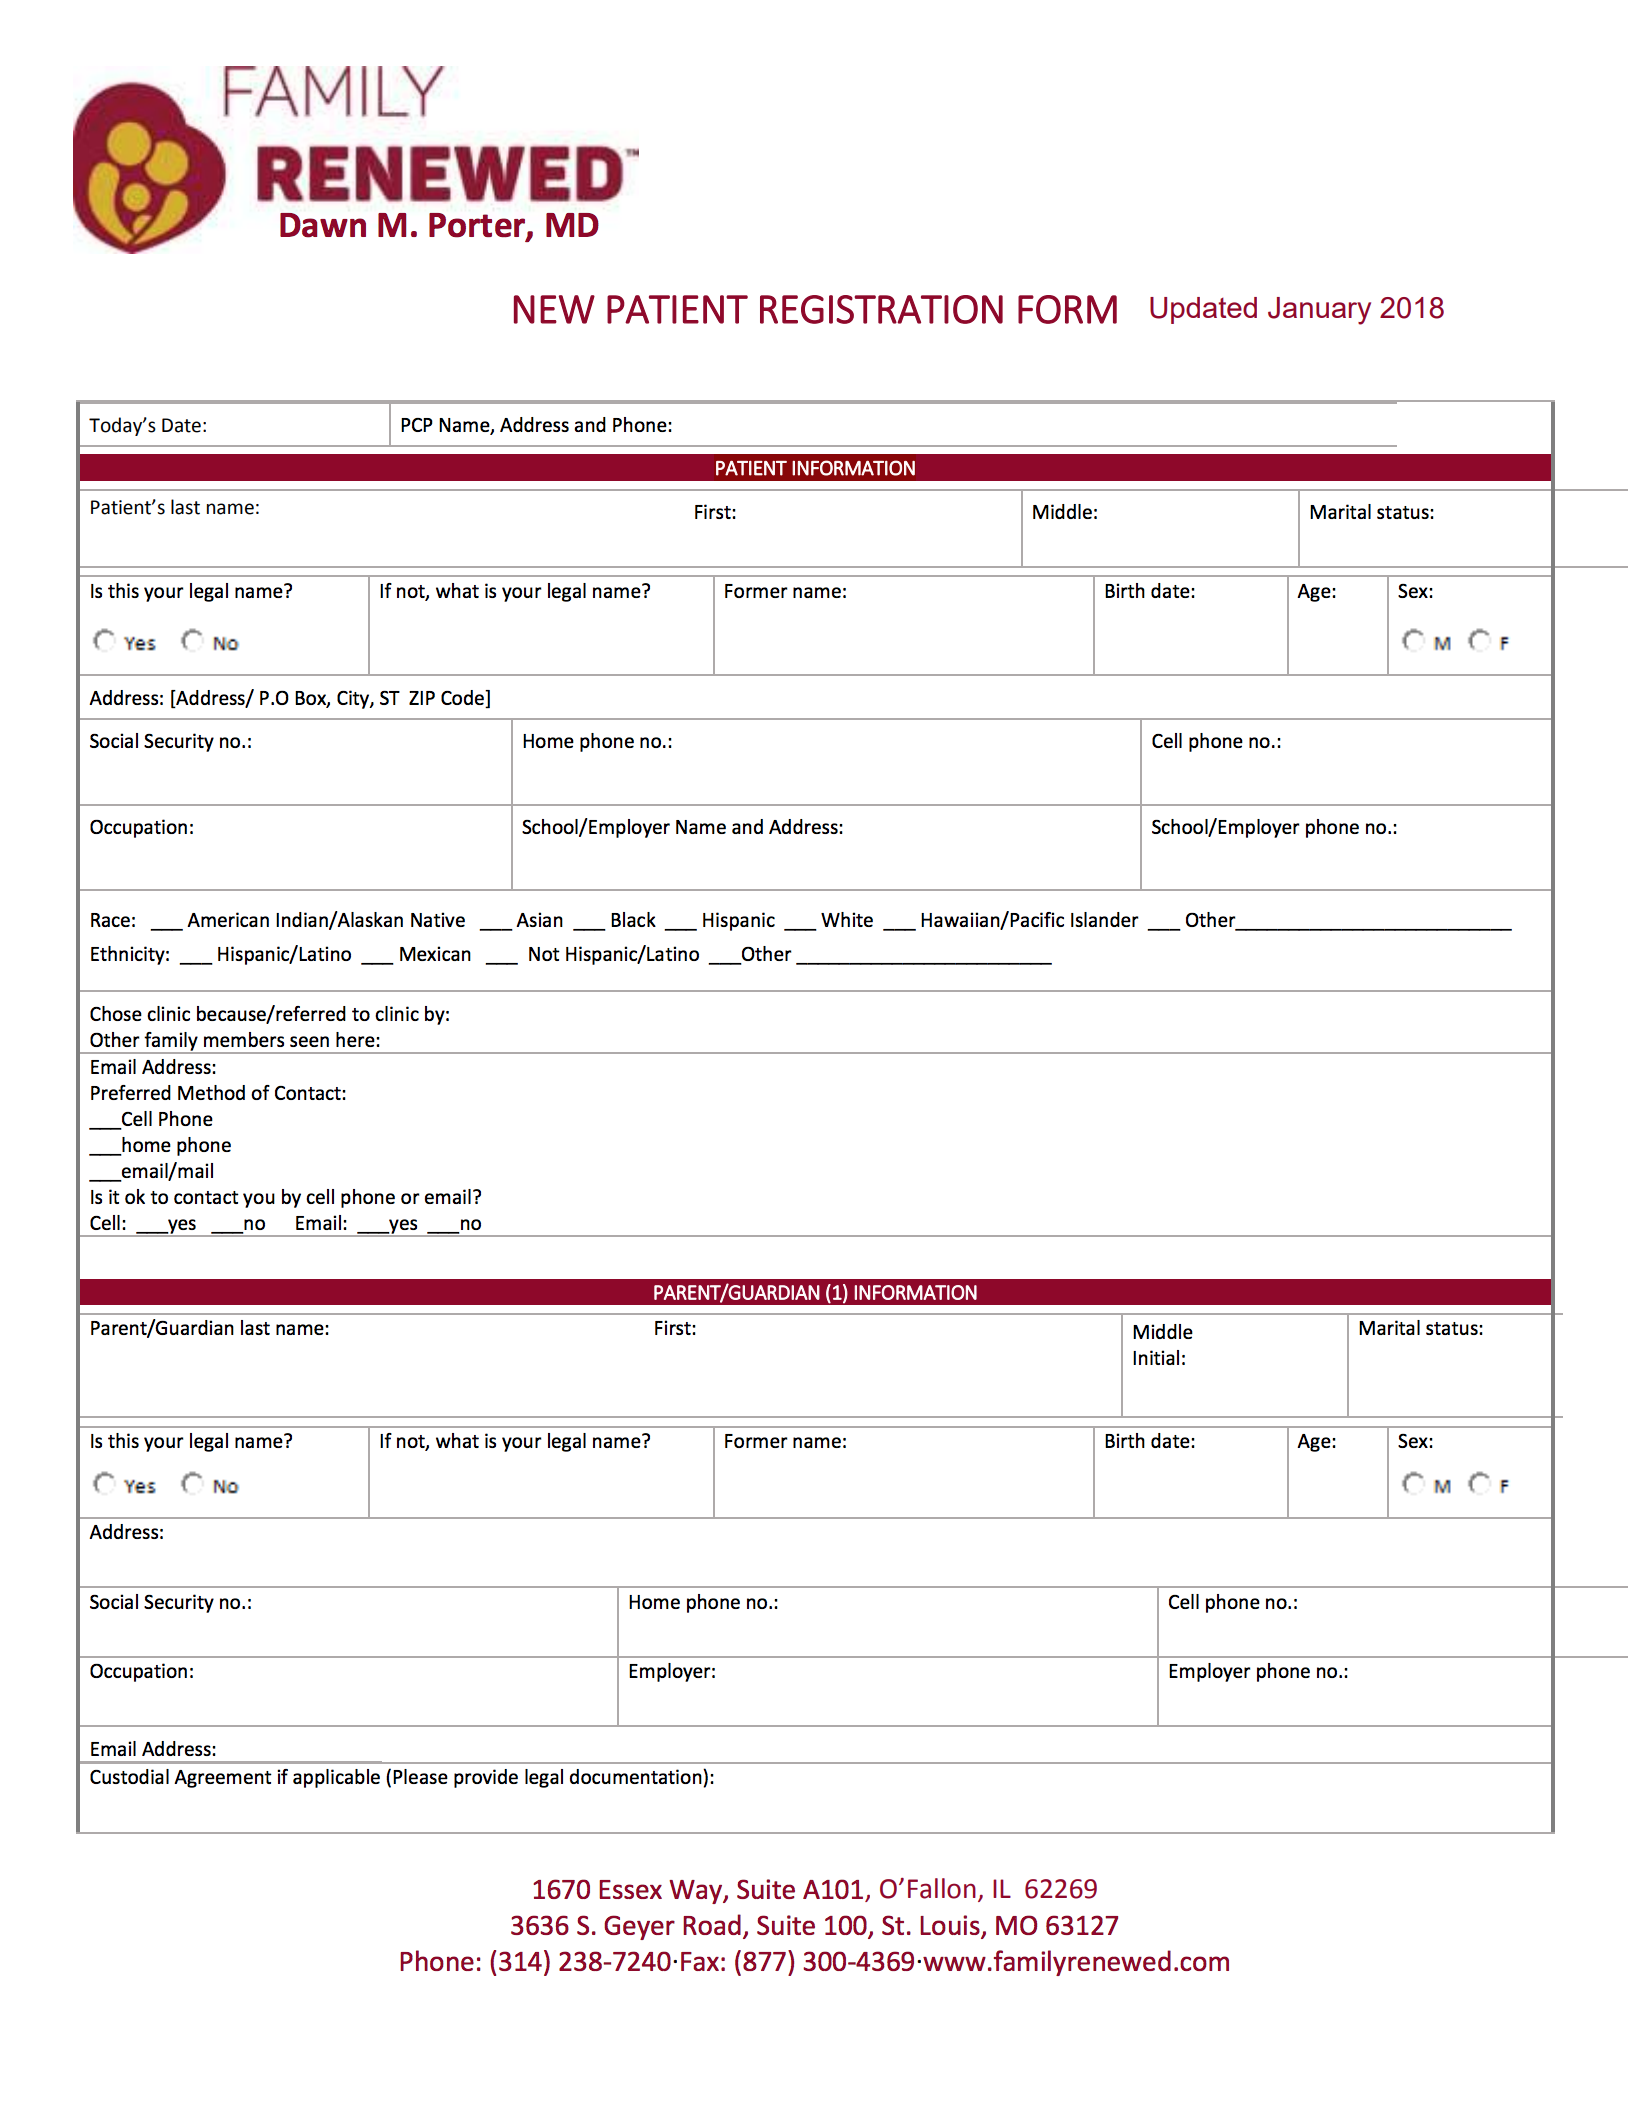 FR New Patient Registration Form 10-28-15